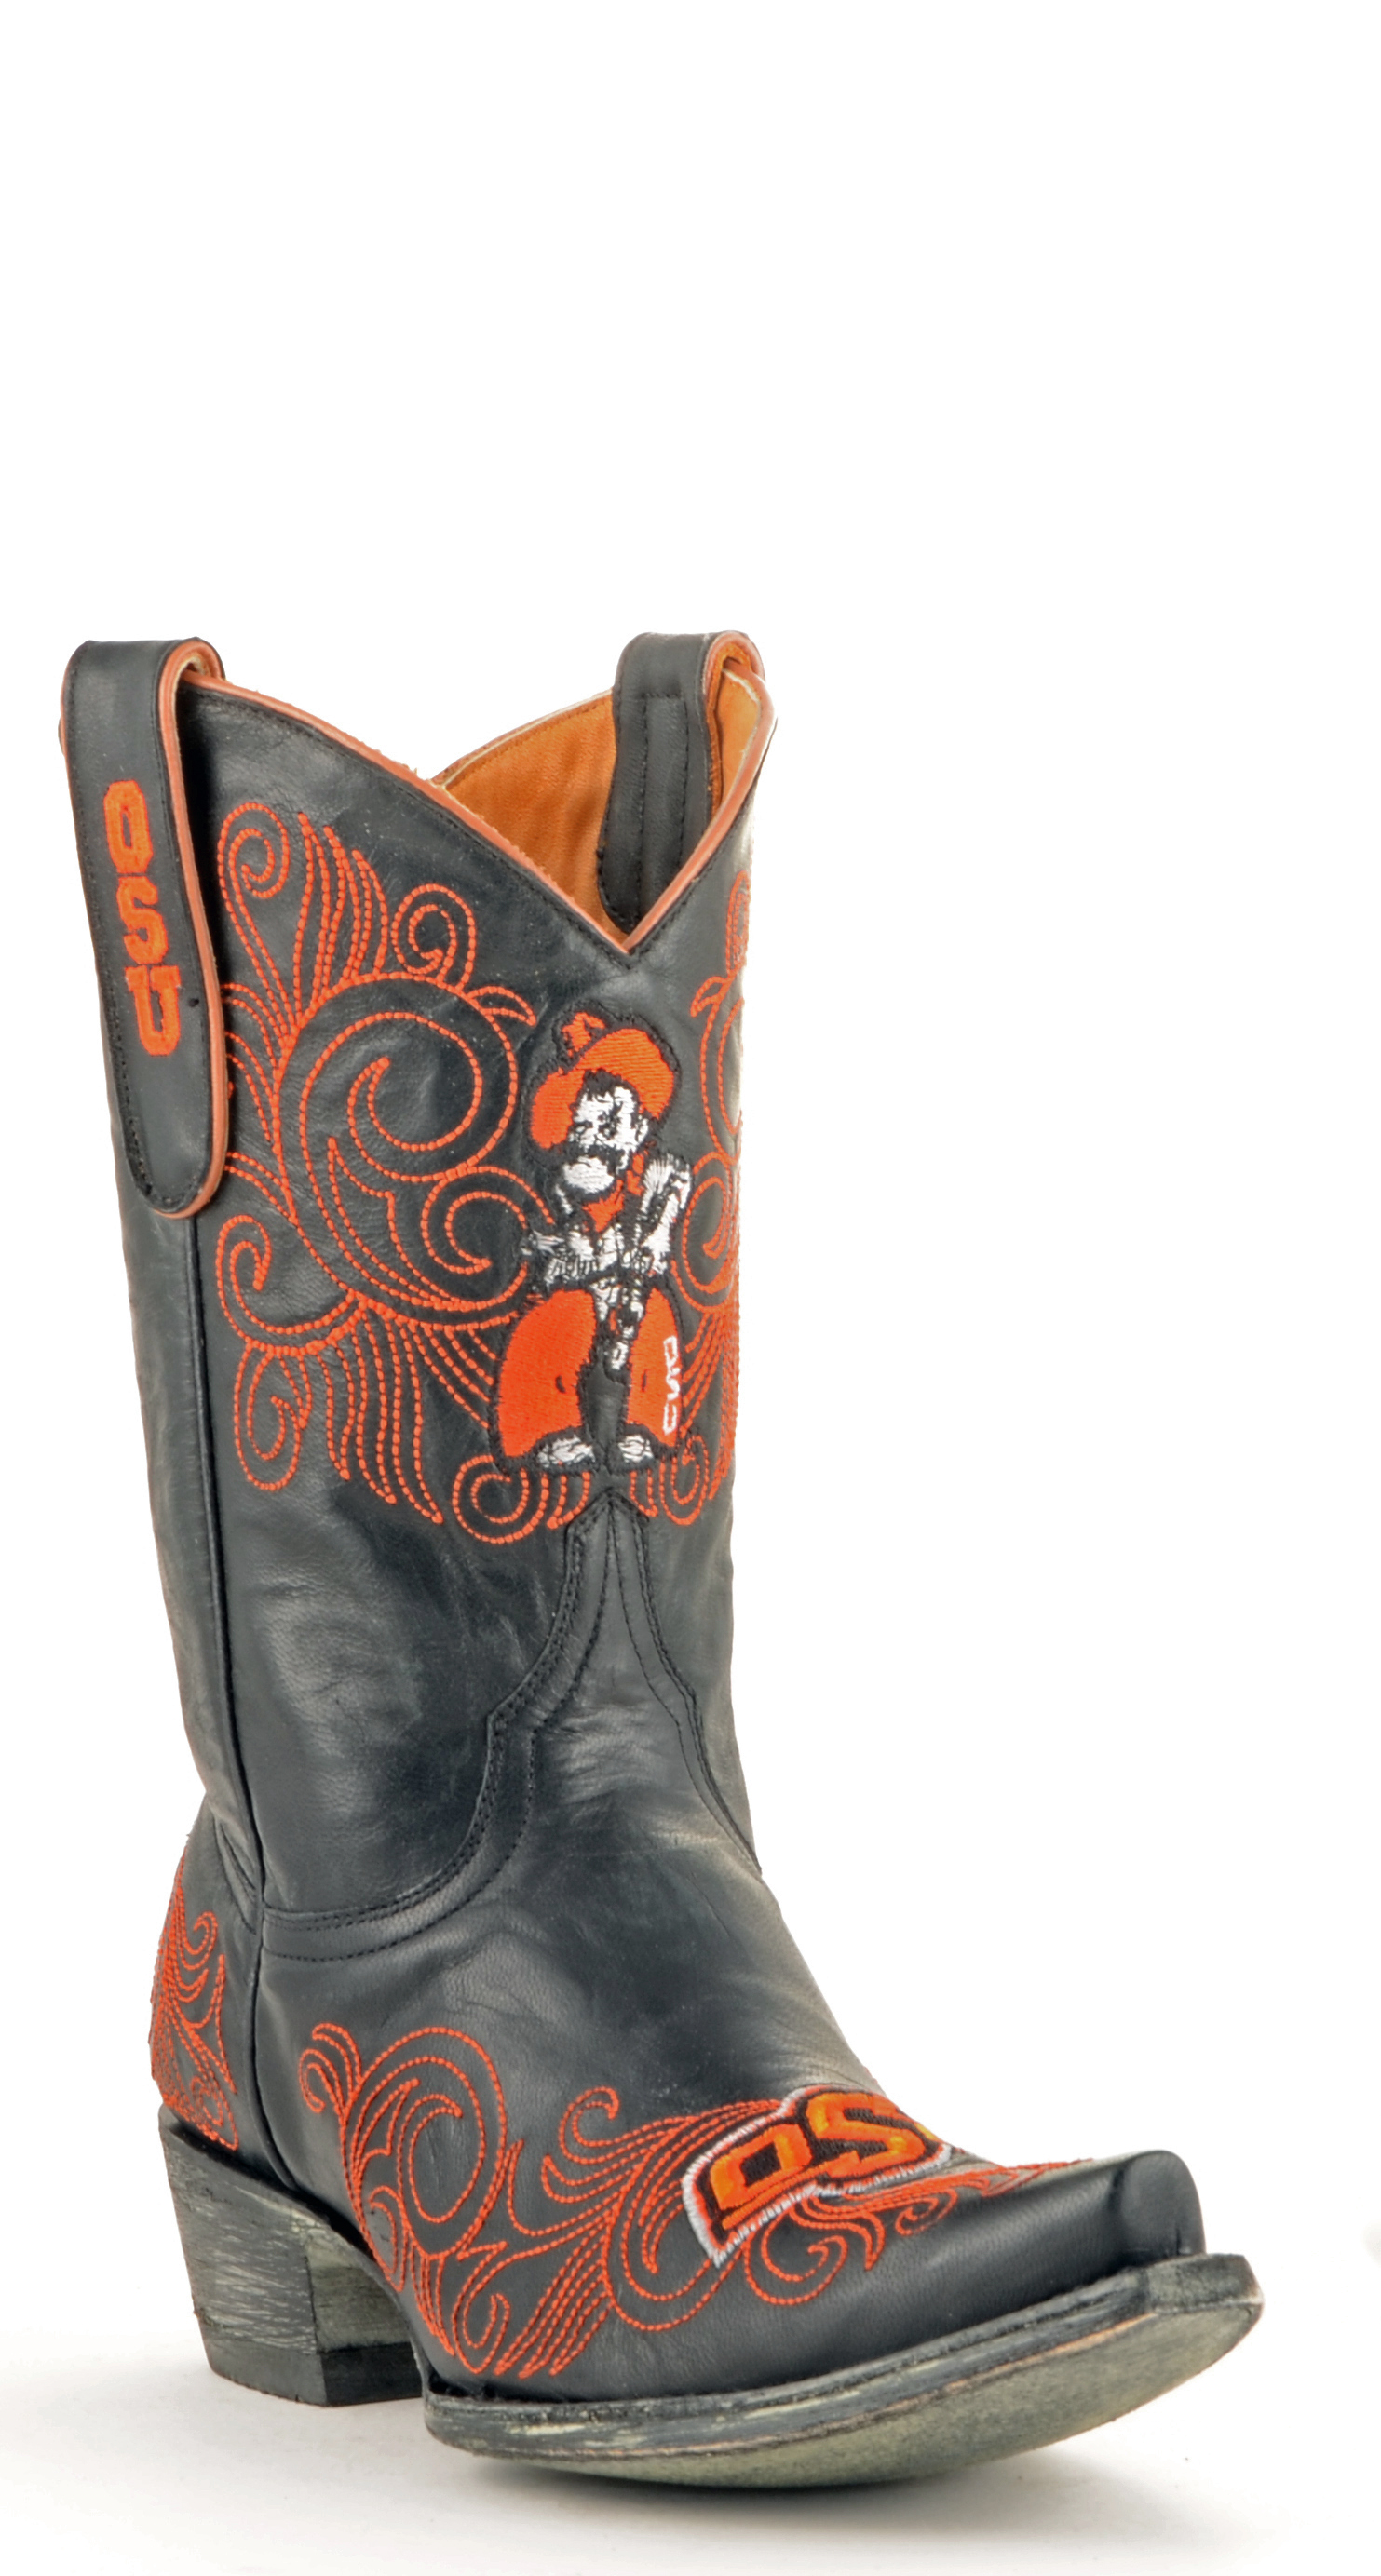 "Gameday Boots Women's 10"" Short Leather Oklahoma State Cowboy Boots by GameDay Boots"